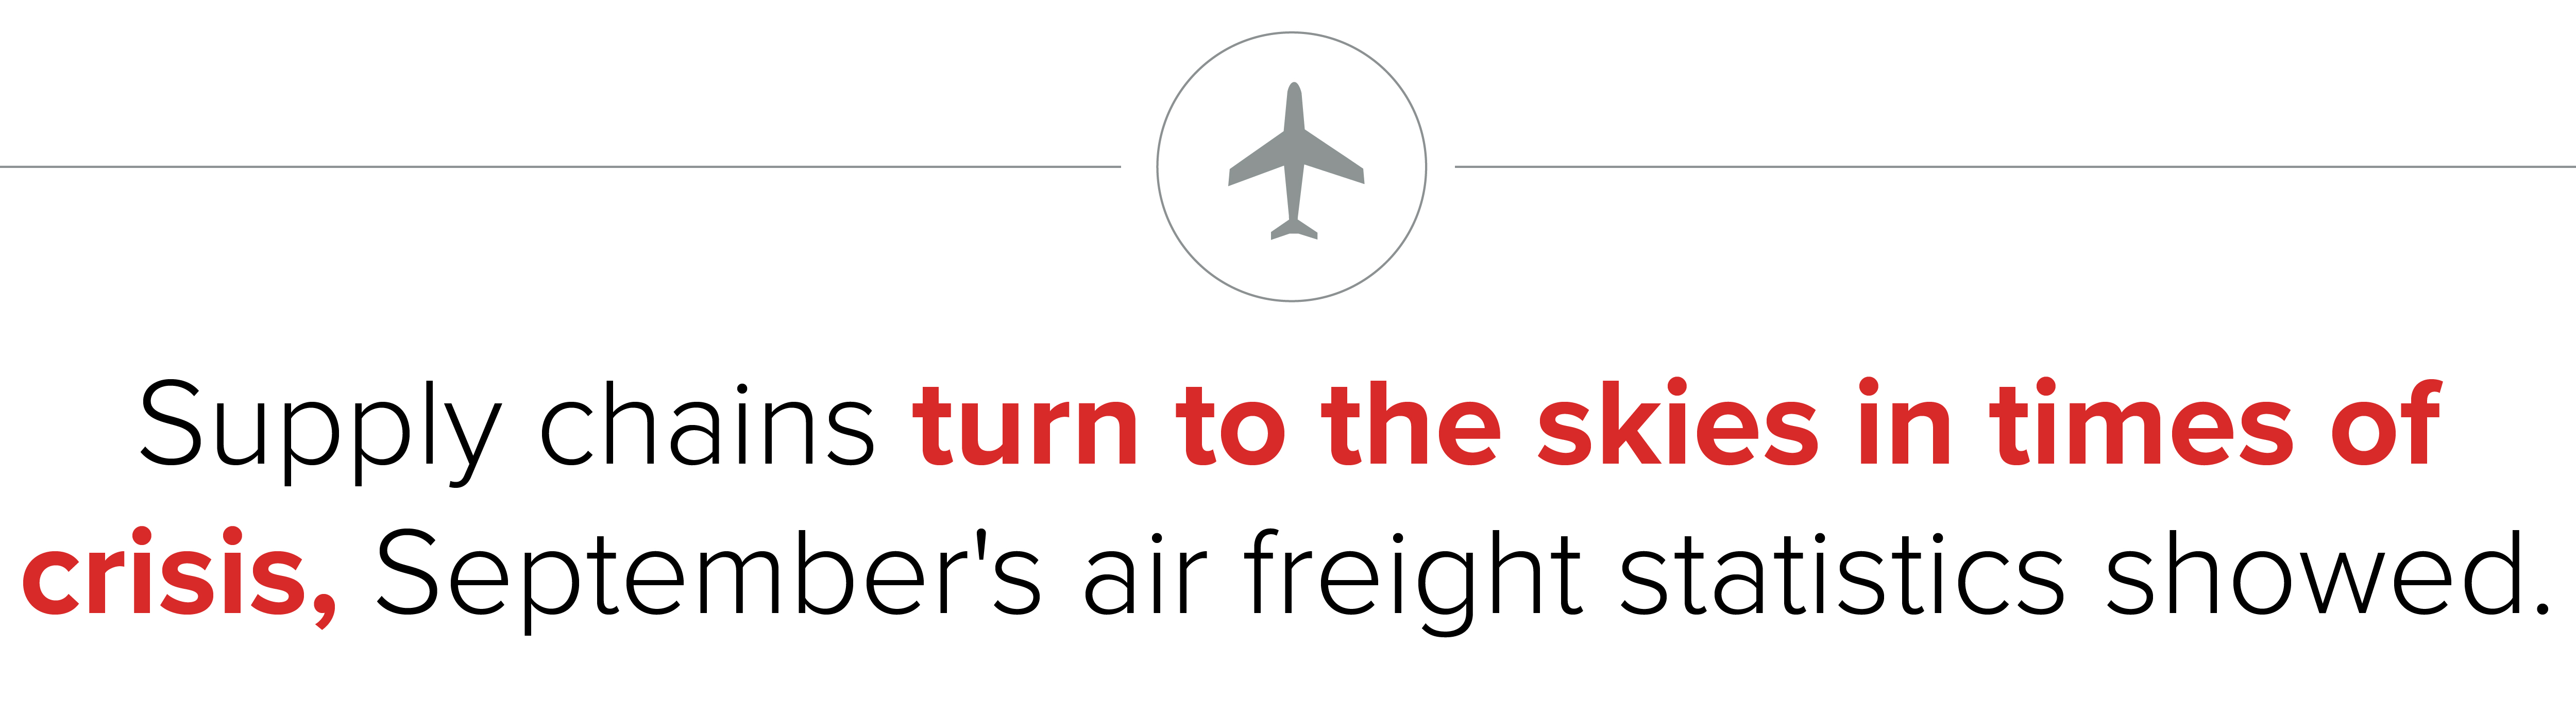 Supply chain expedited freight travels by air